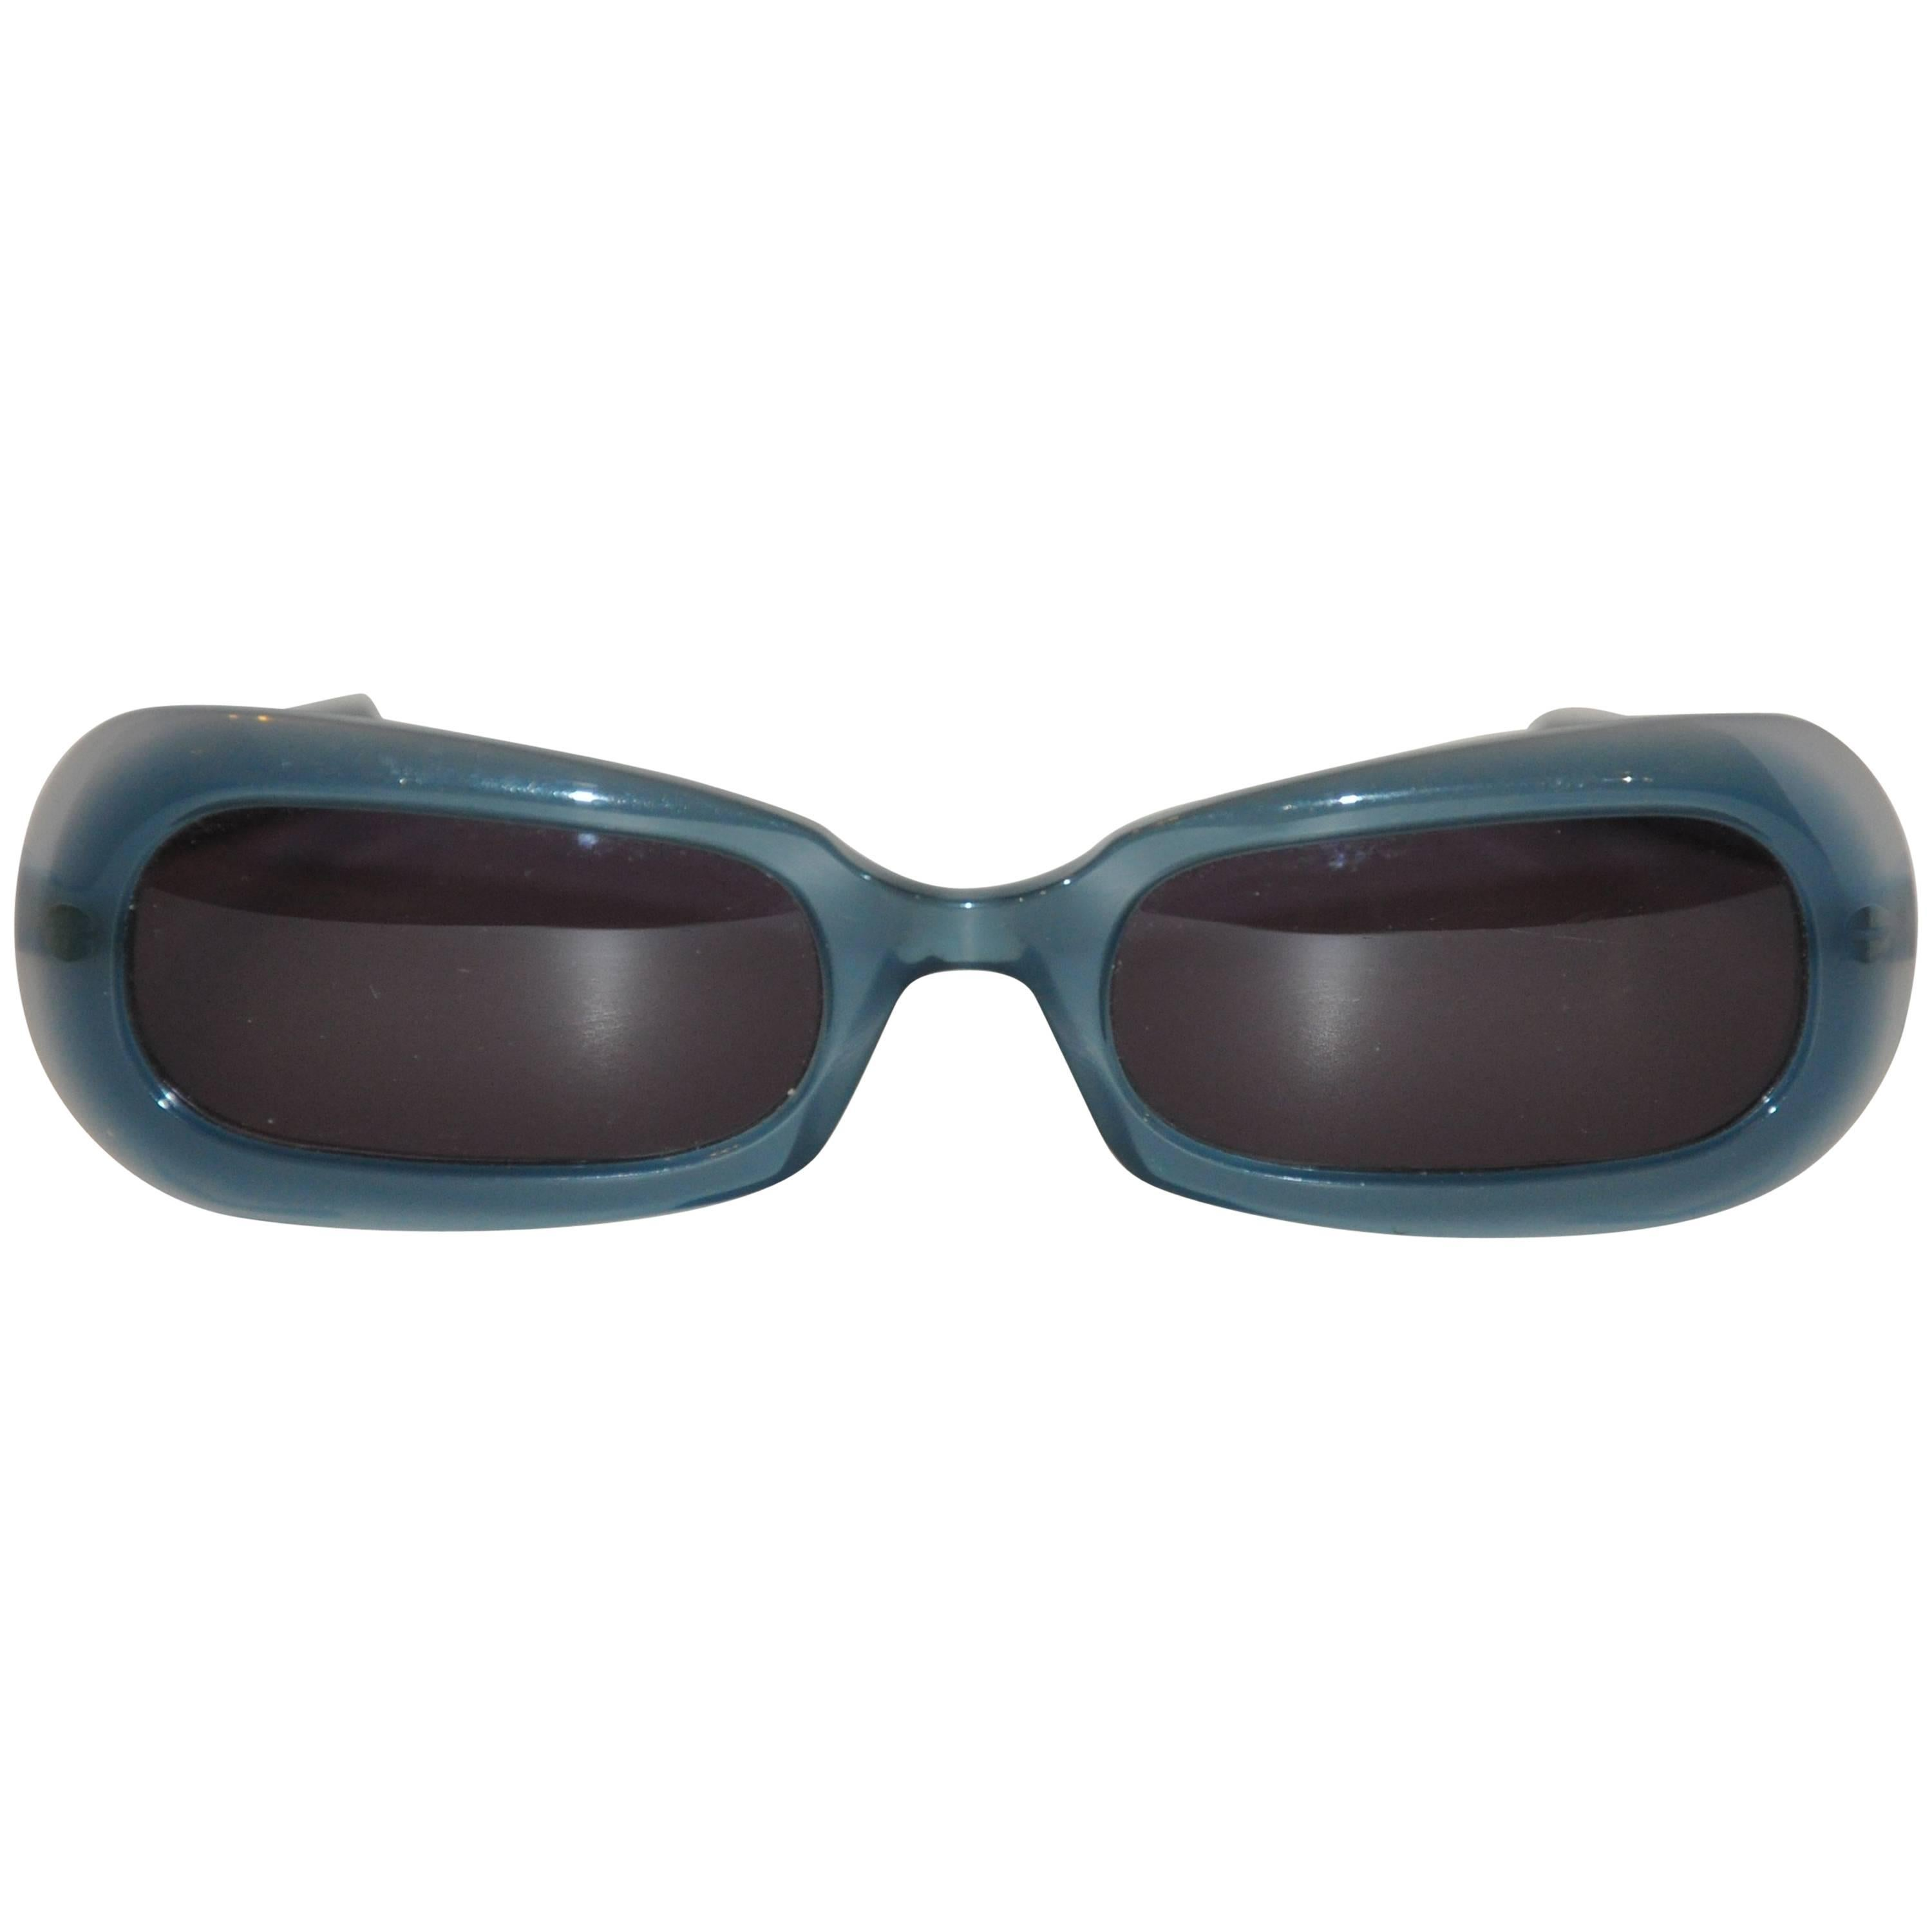 """Thierry Mugler """"Shades of Turquoise"""" Lucite Sunglasses"""